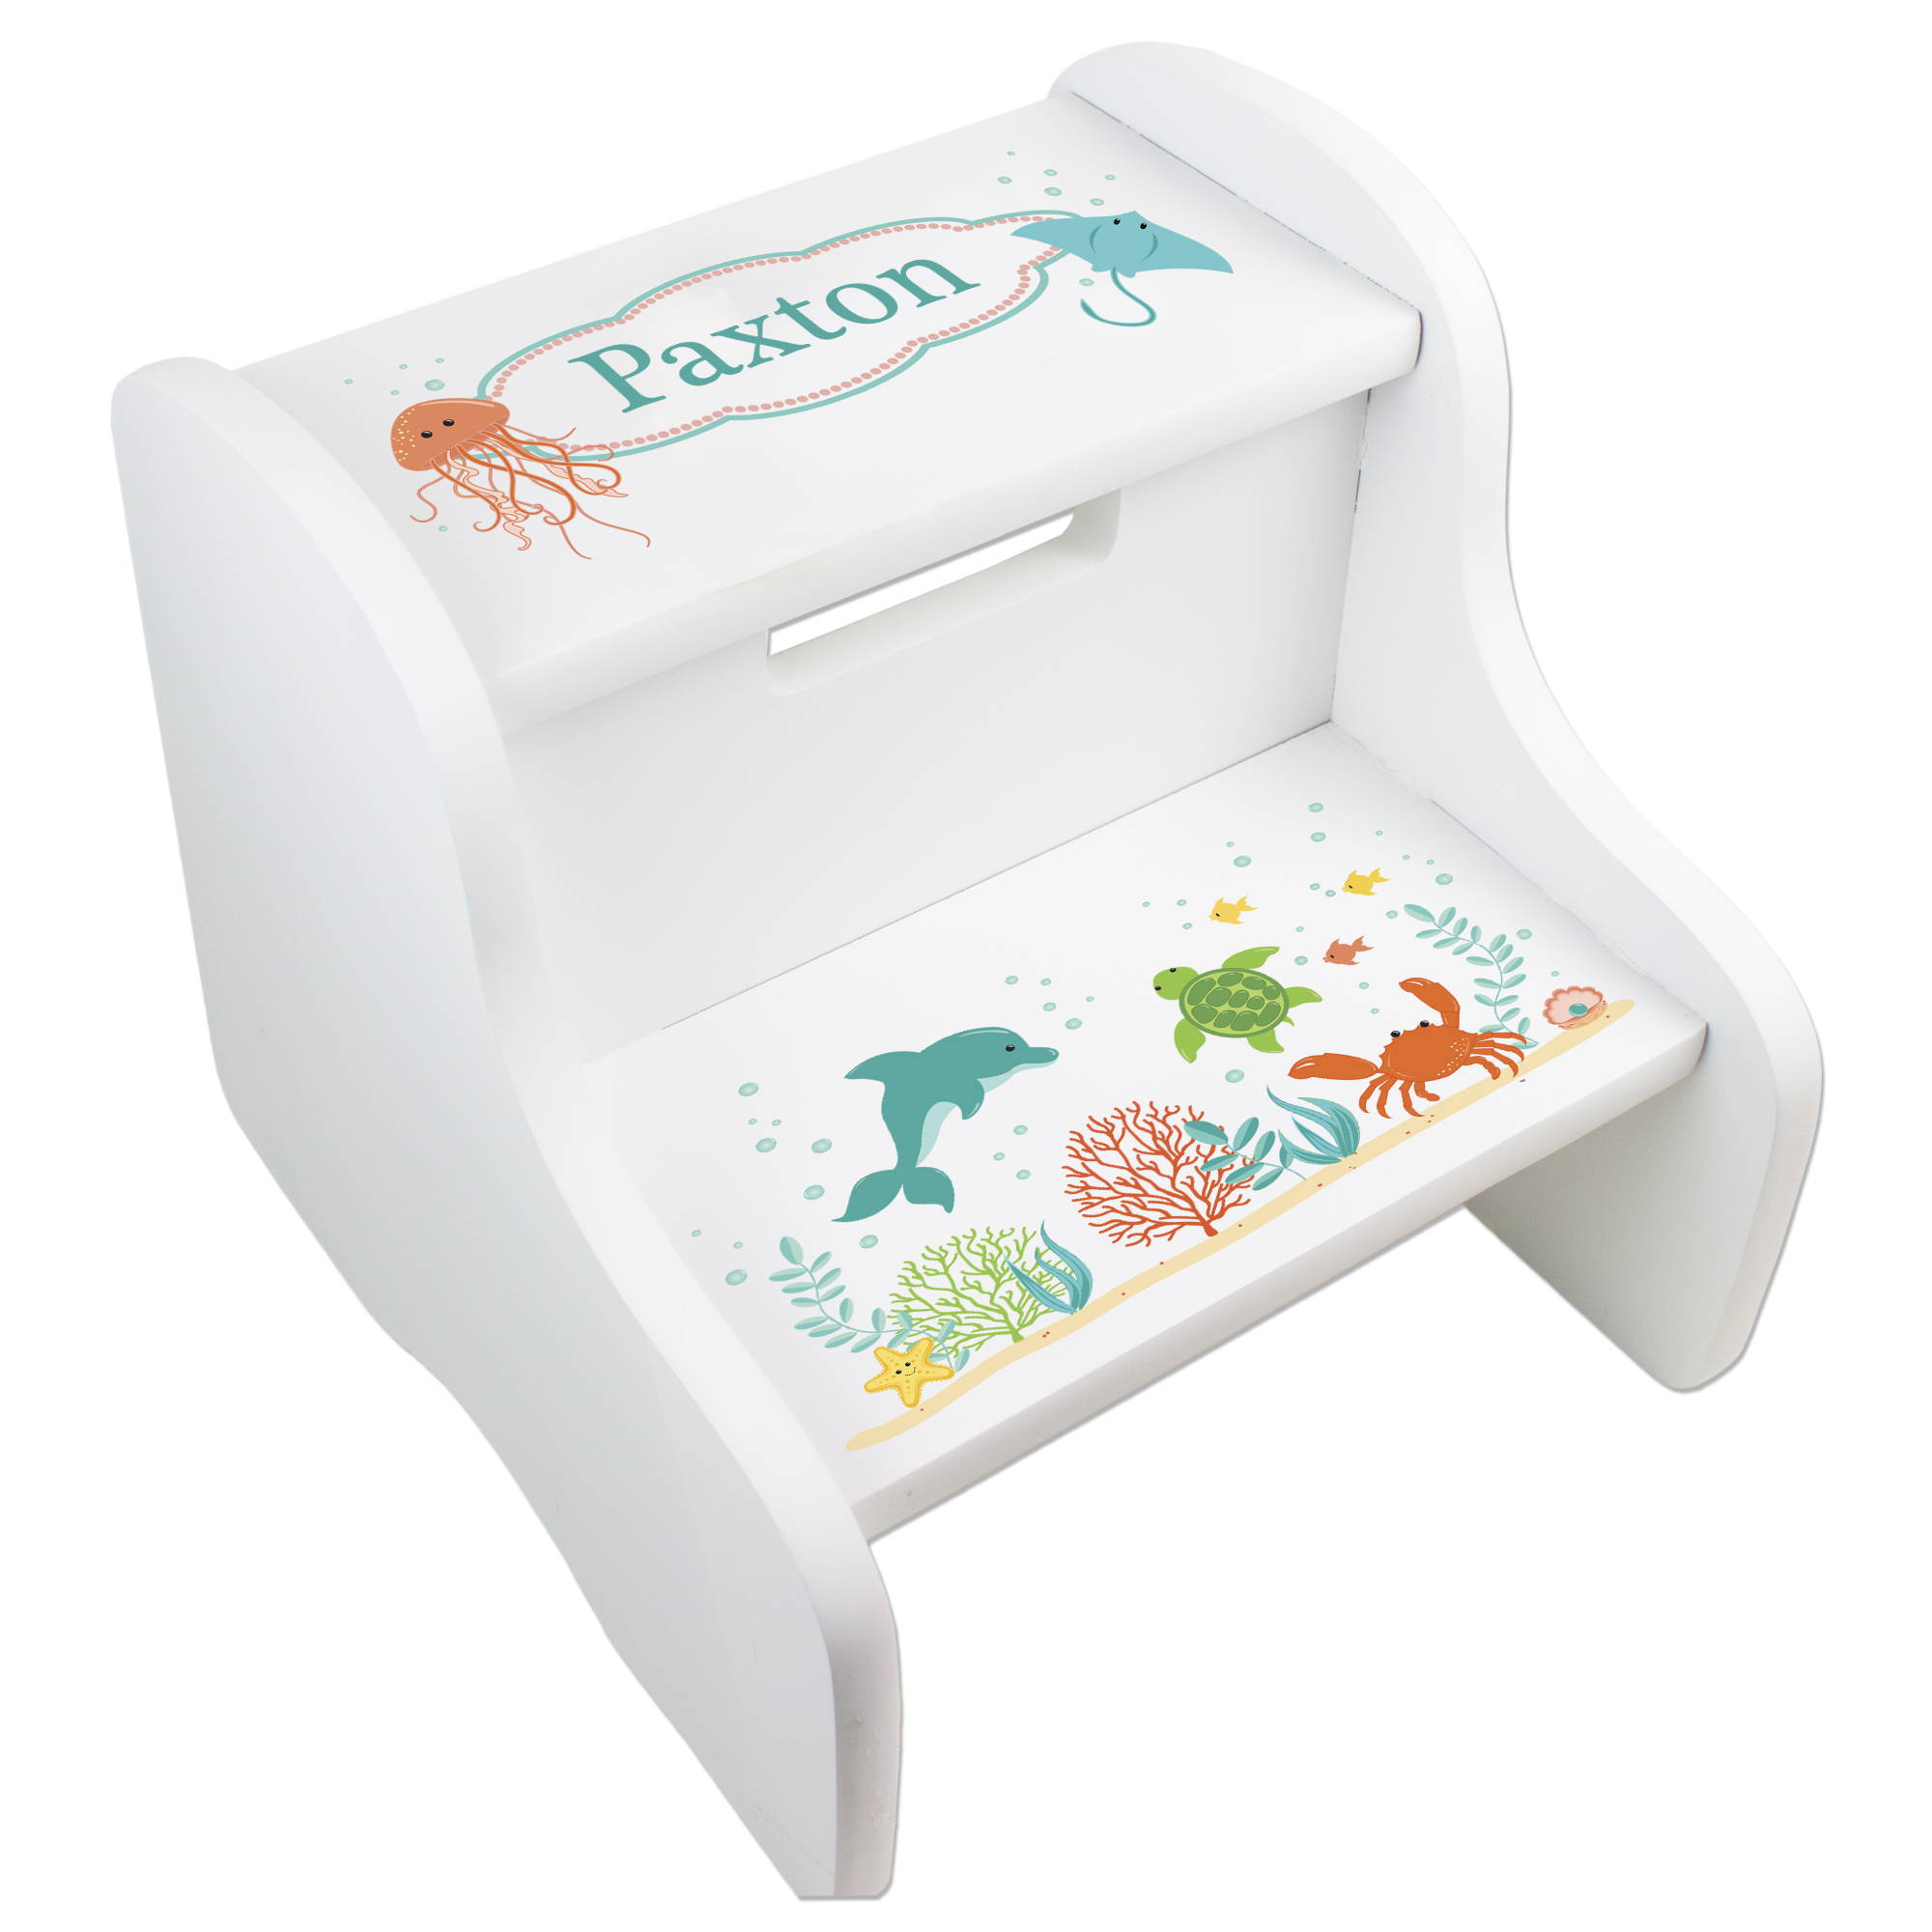 childs personaliized sea life step stool